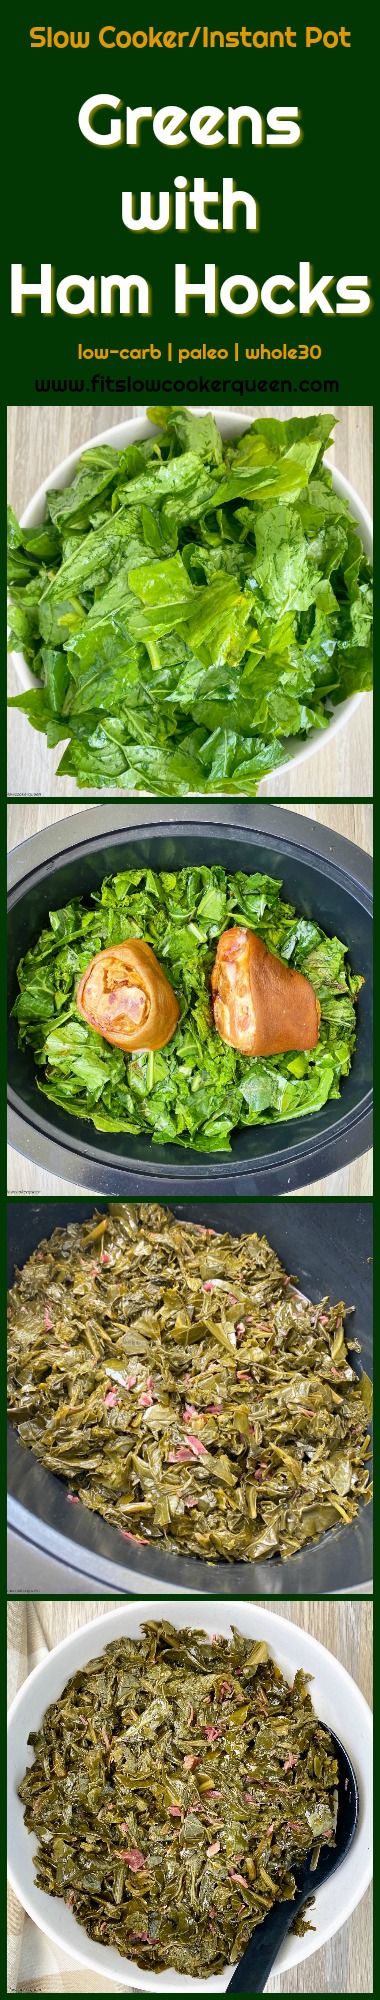 another pinterest pin for Slow Cooker_Instant Pot Greens with Ham Hocks (Low-Carb, Paleo,Whole30)